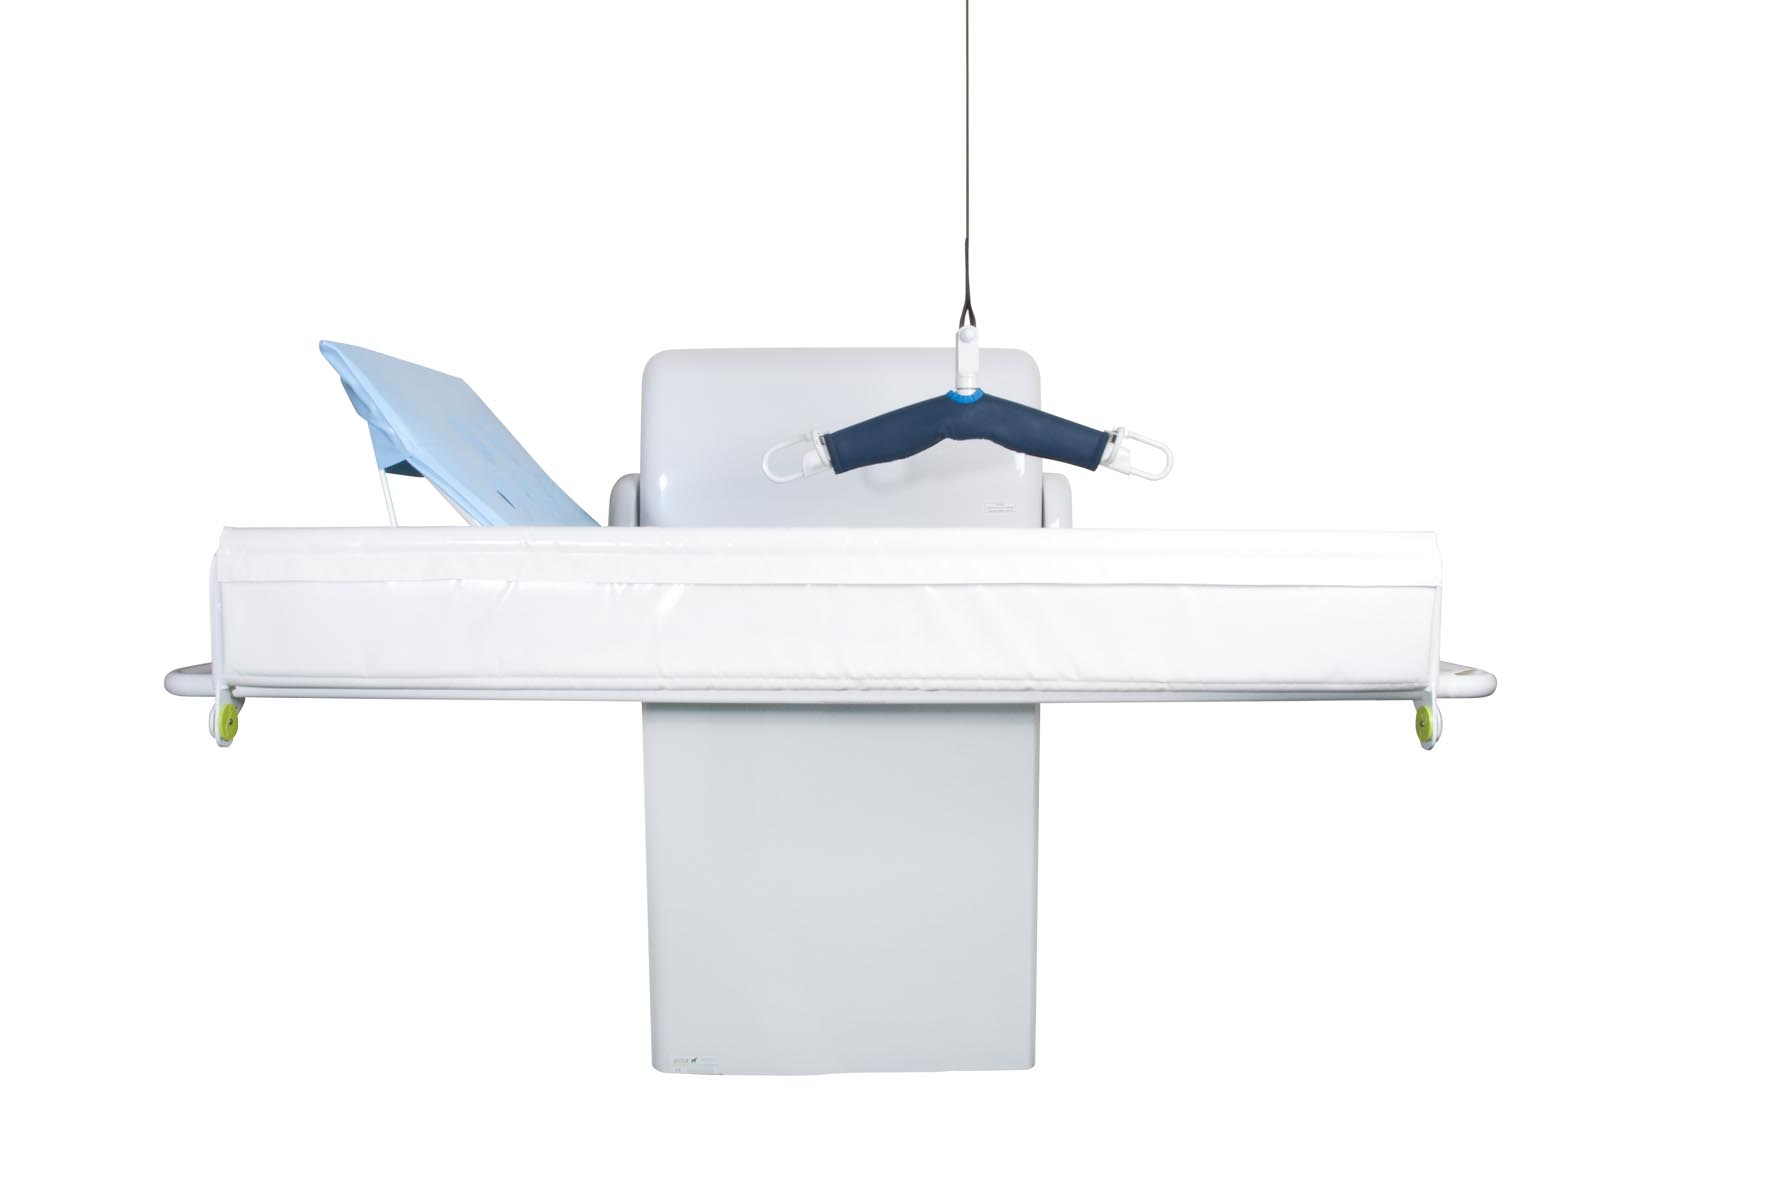 Nivano Heightadjustable Shower And Changing Table Living Made Easy - Adjustable changing table